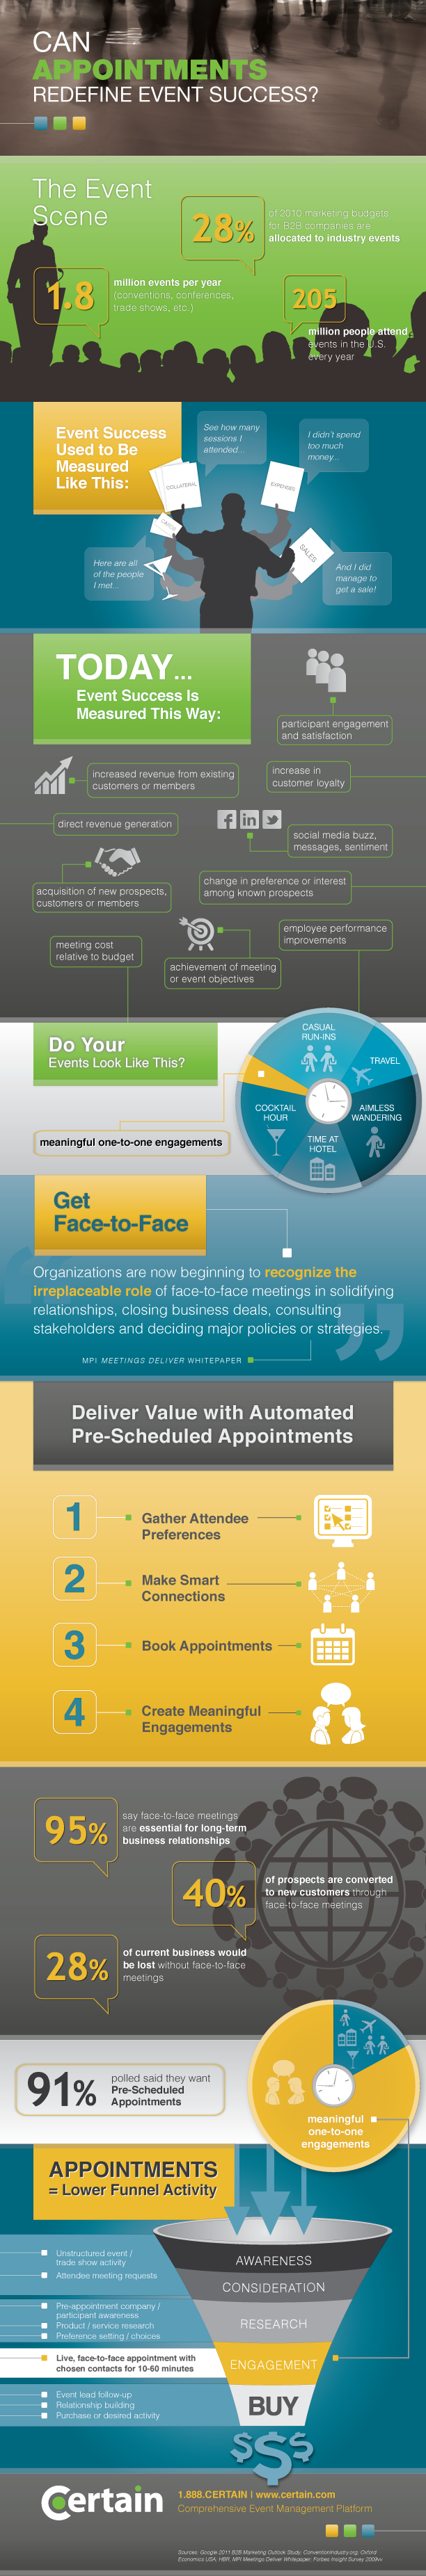 can-appointments-redefine-event-success-infographic